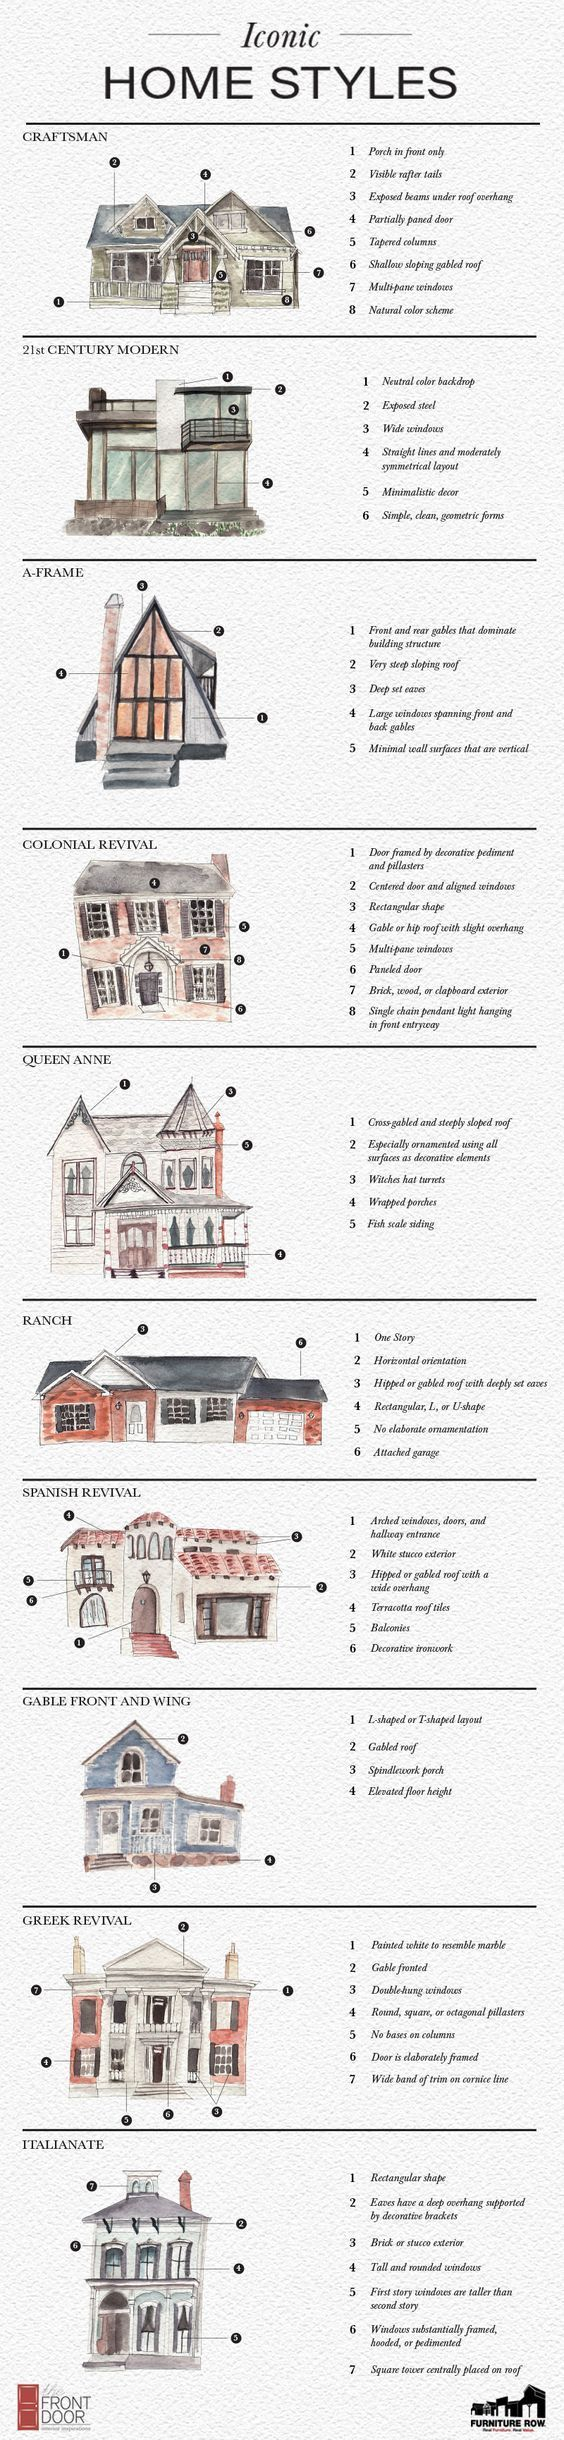 Gallery Of 26 Handy Architecture Cheat Sheets 22 Home Styles House Styles Interior Design Tips